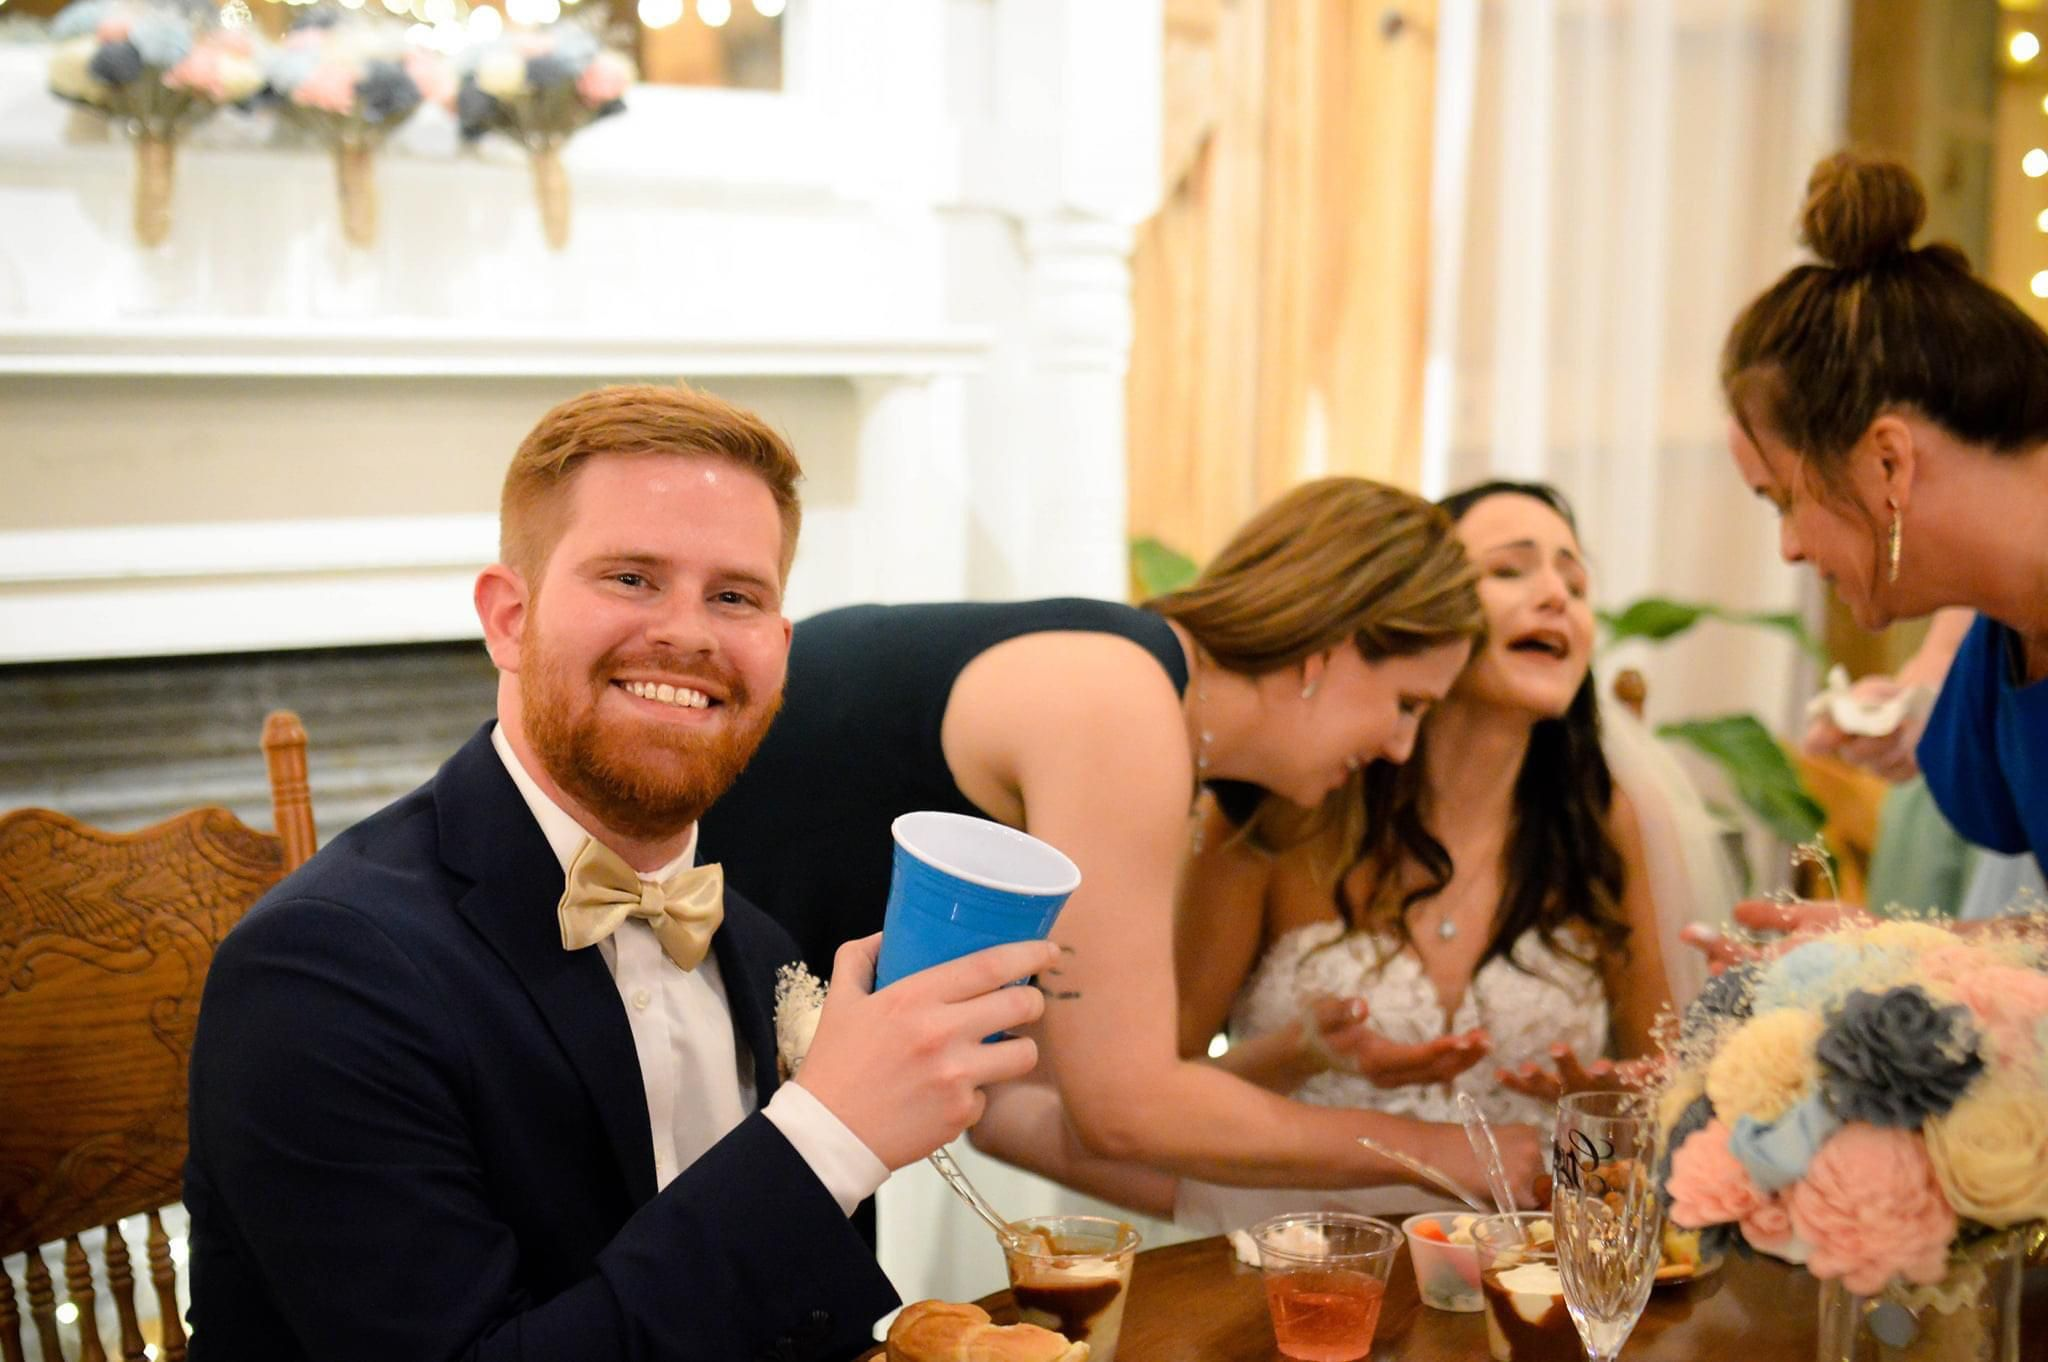 SIL got married, this is the second she realized she got BBQ sauce on her dress. Hubby still golden.